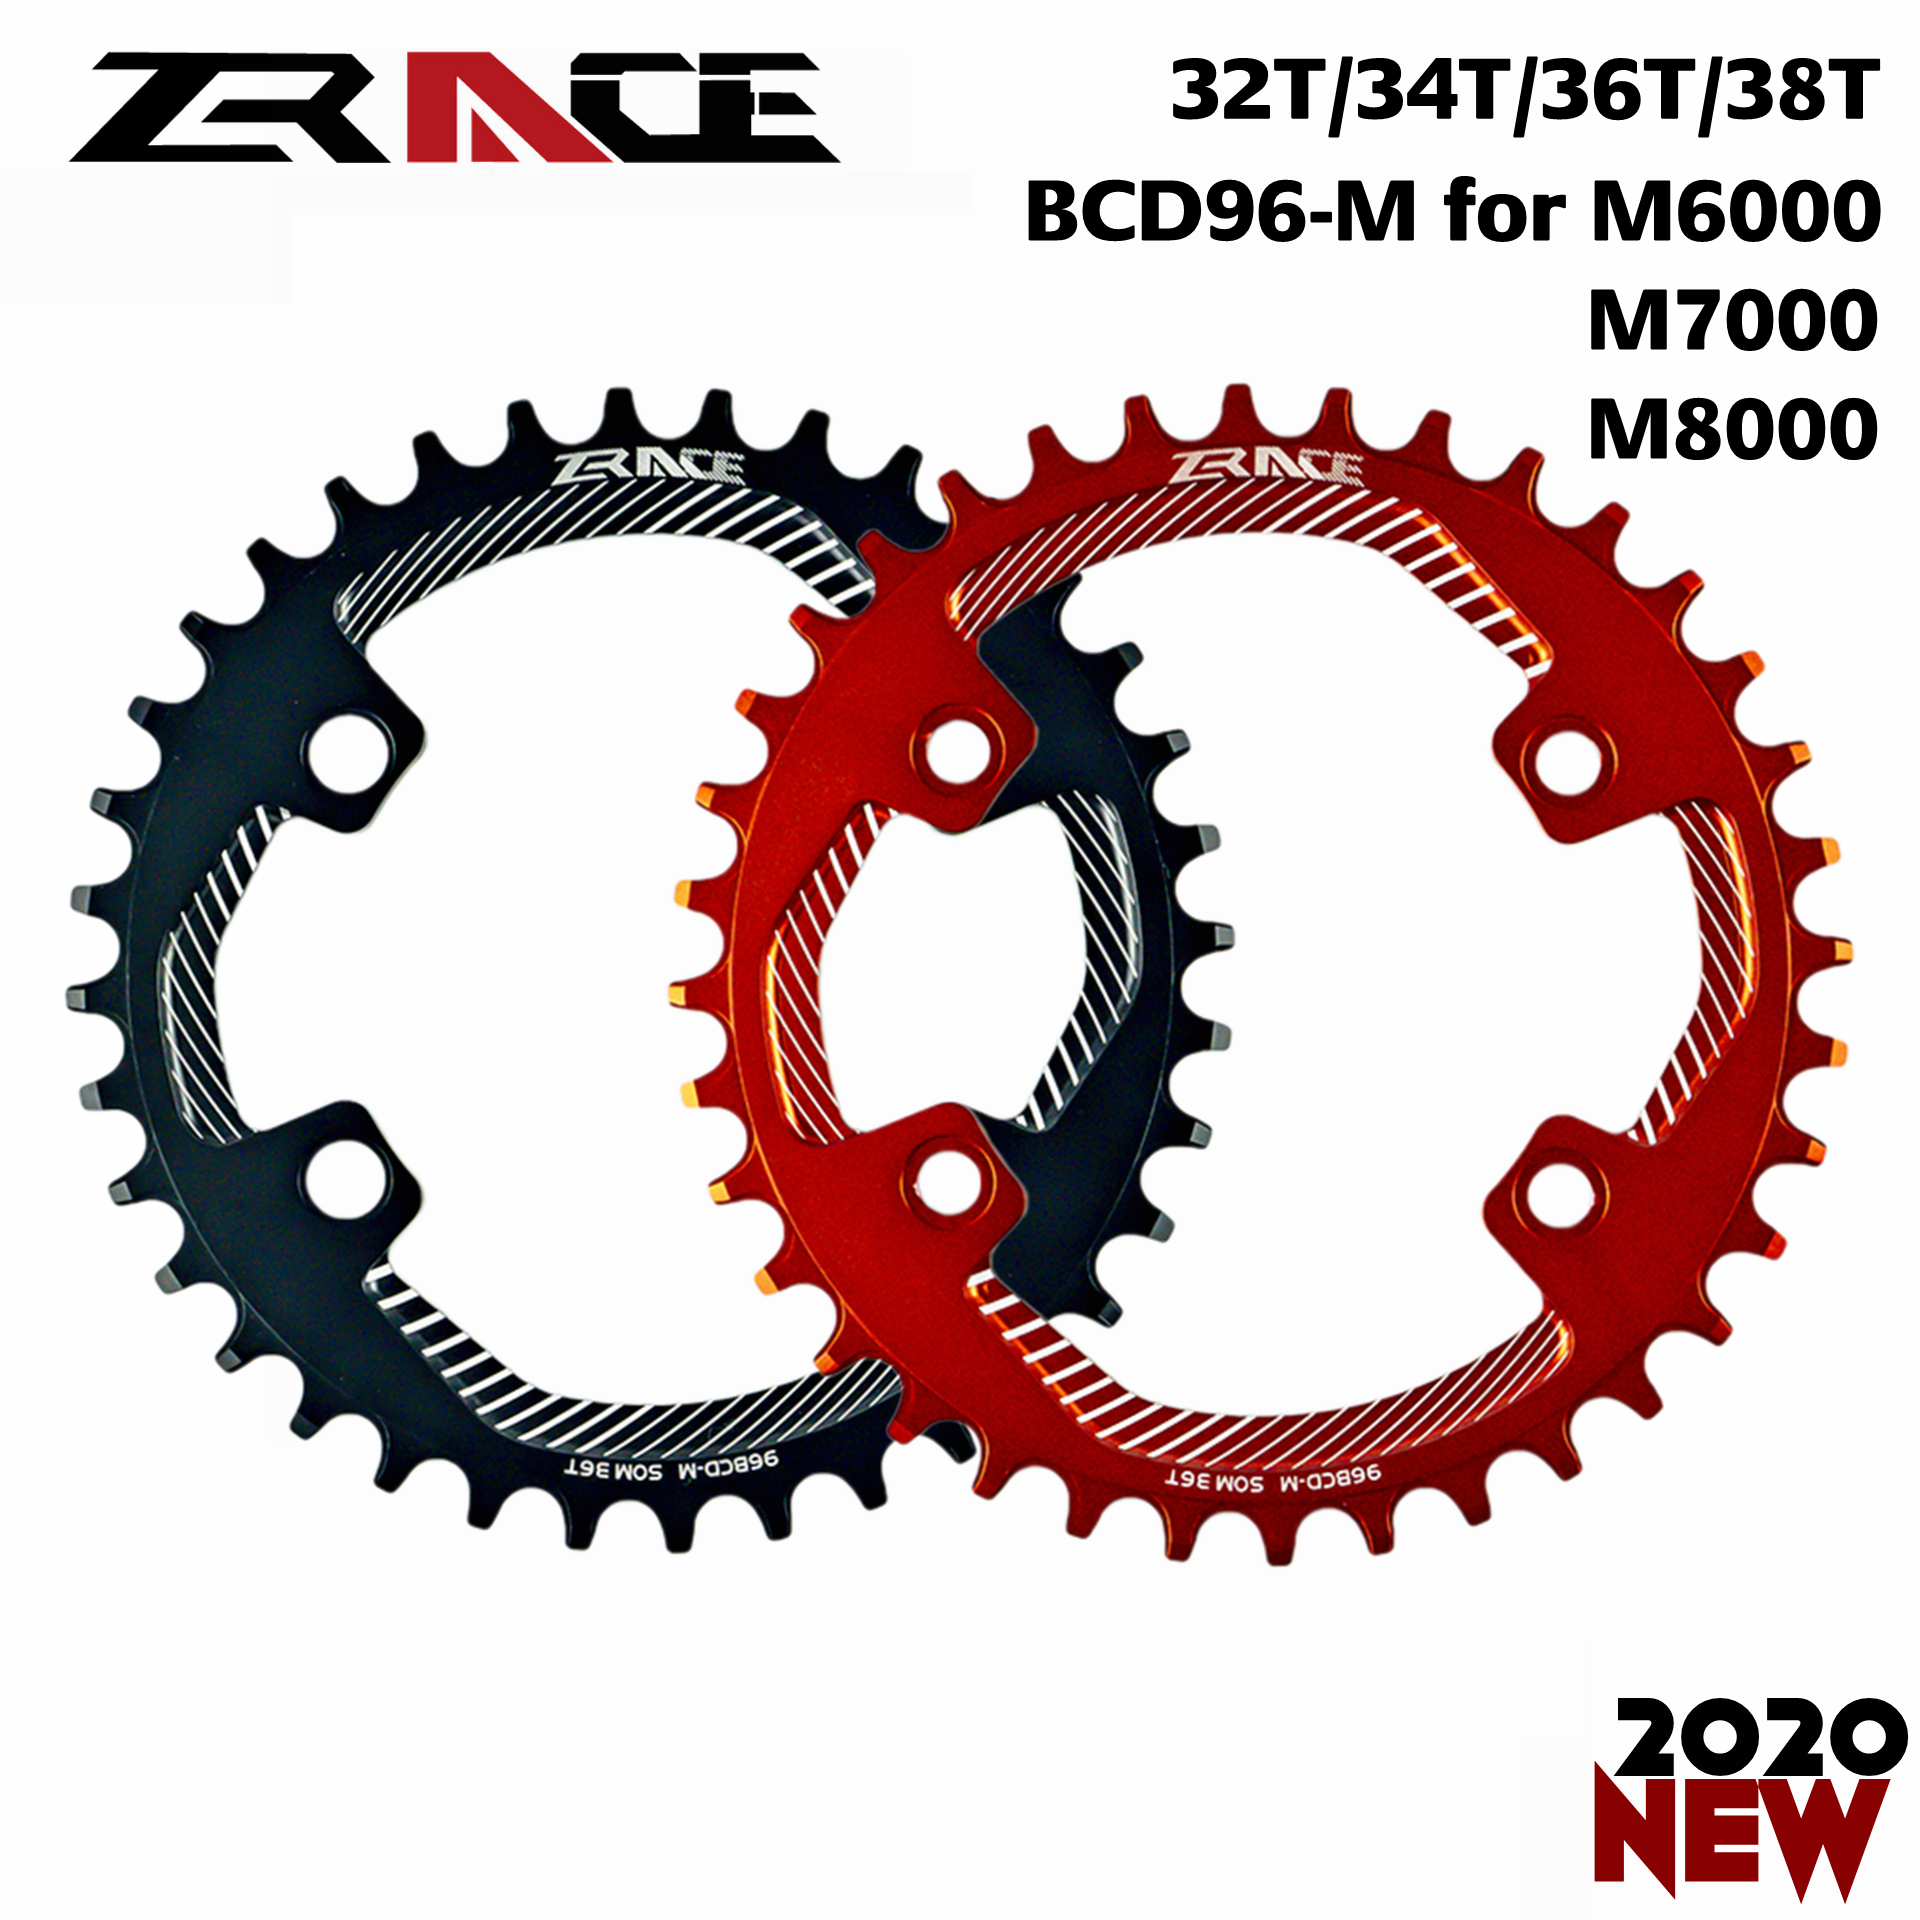 2020 ZRACE Chainrings Chainwheels BCD96-M For M8000 M7000 M6000,32T 34T 36T 38T AL7075 CNC Process, Vickers-hardness 15+ For MTB